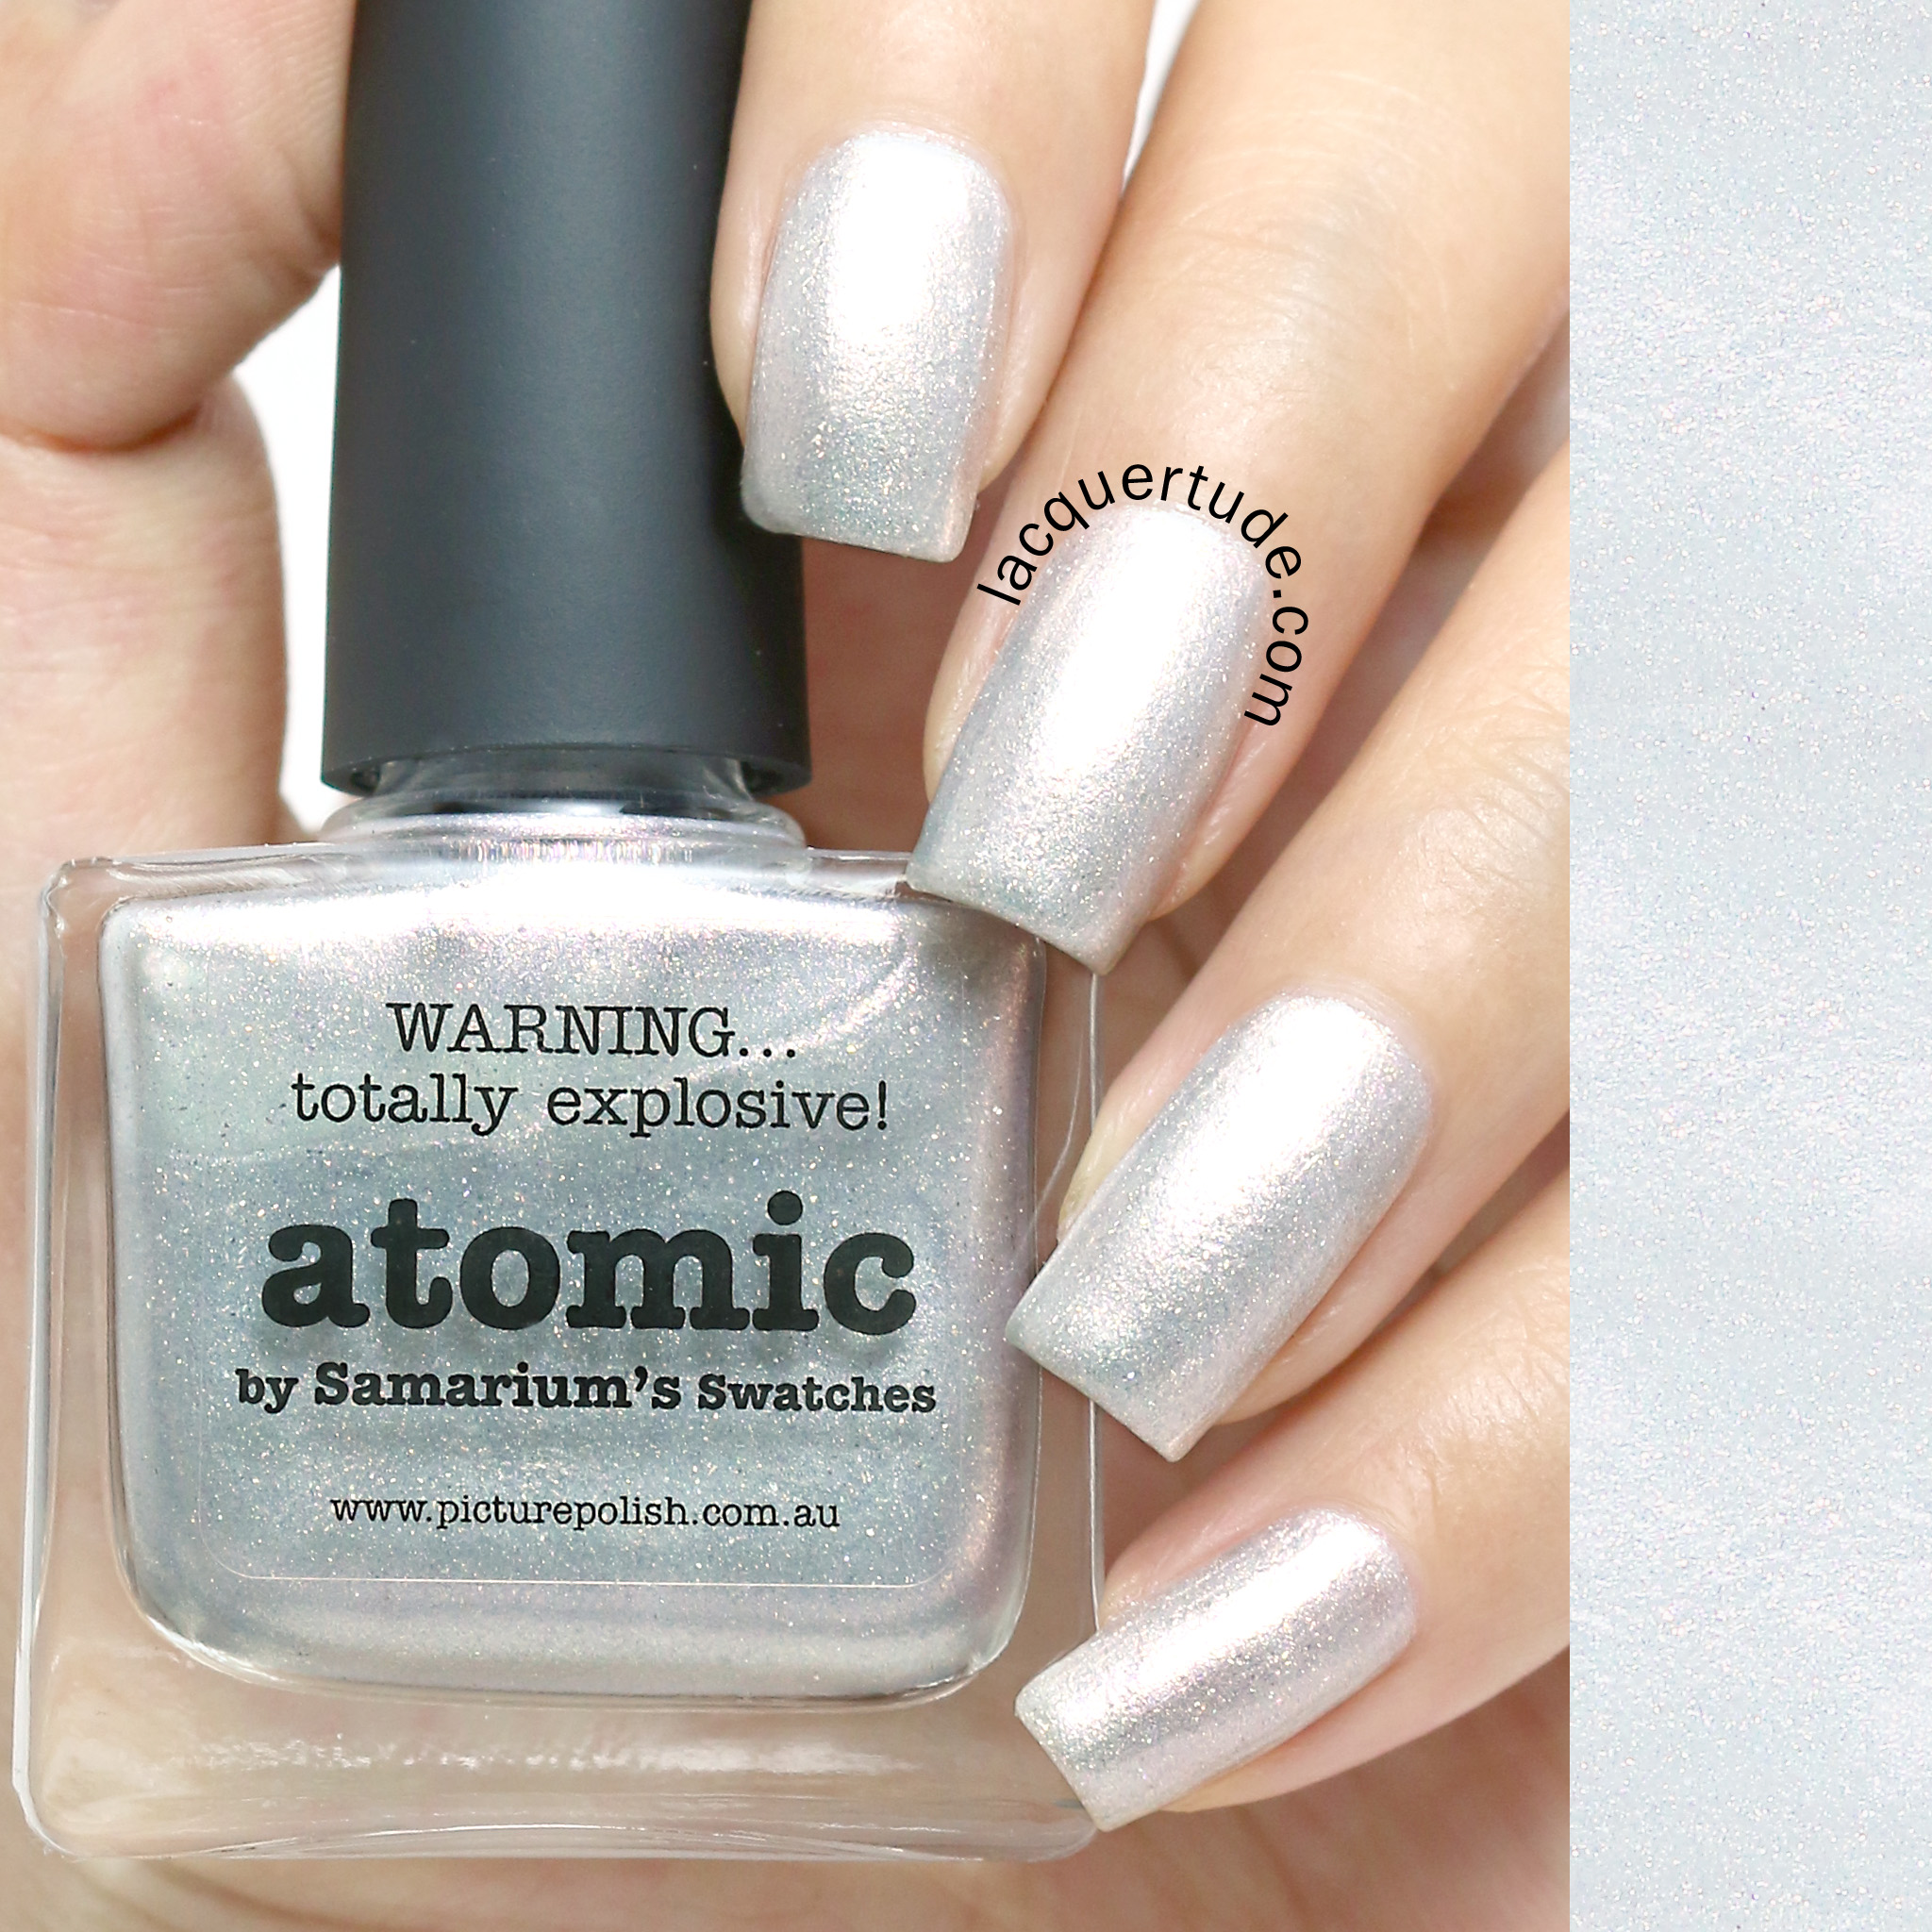 Lacquertude_Picture Polish Atomic Swatch